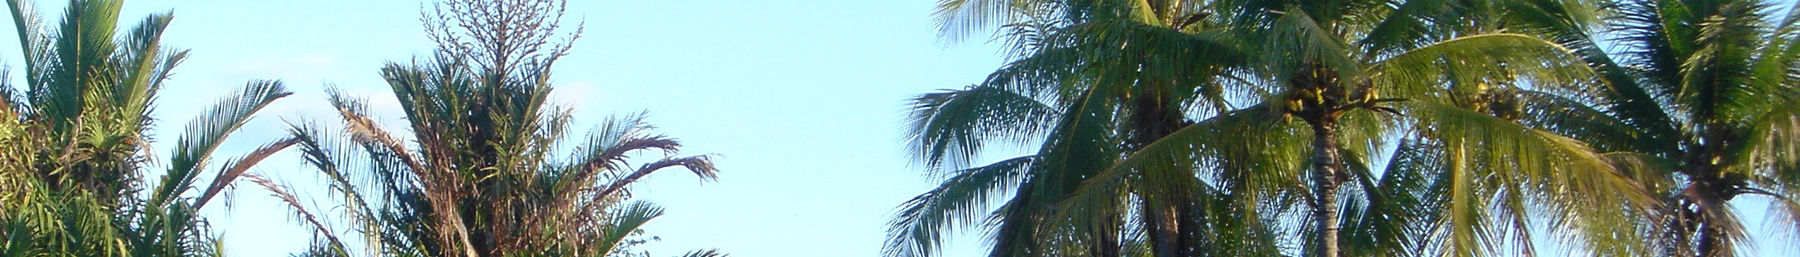 Townsville (Queensland) banner Palms.jpg